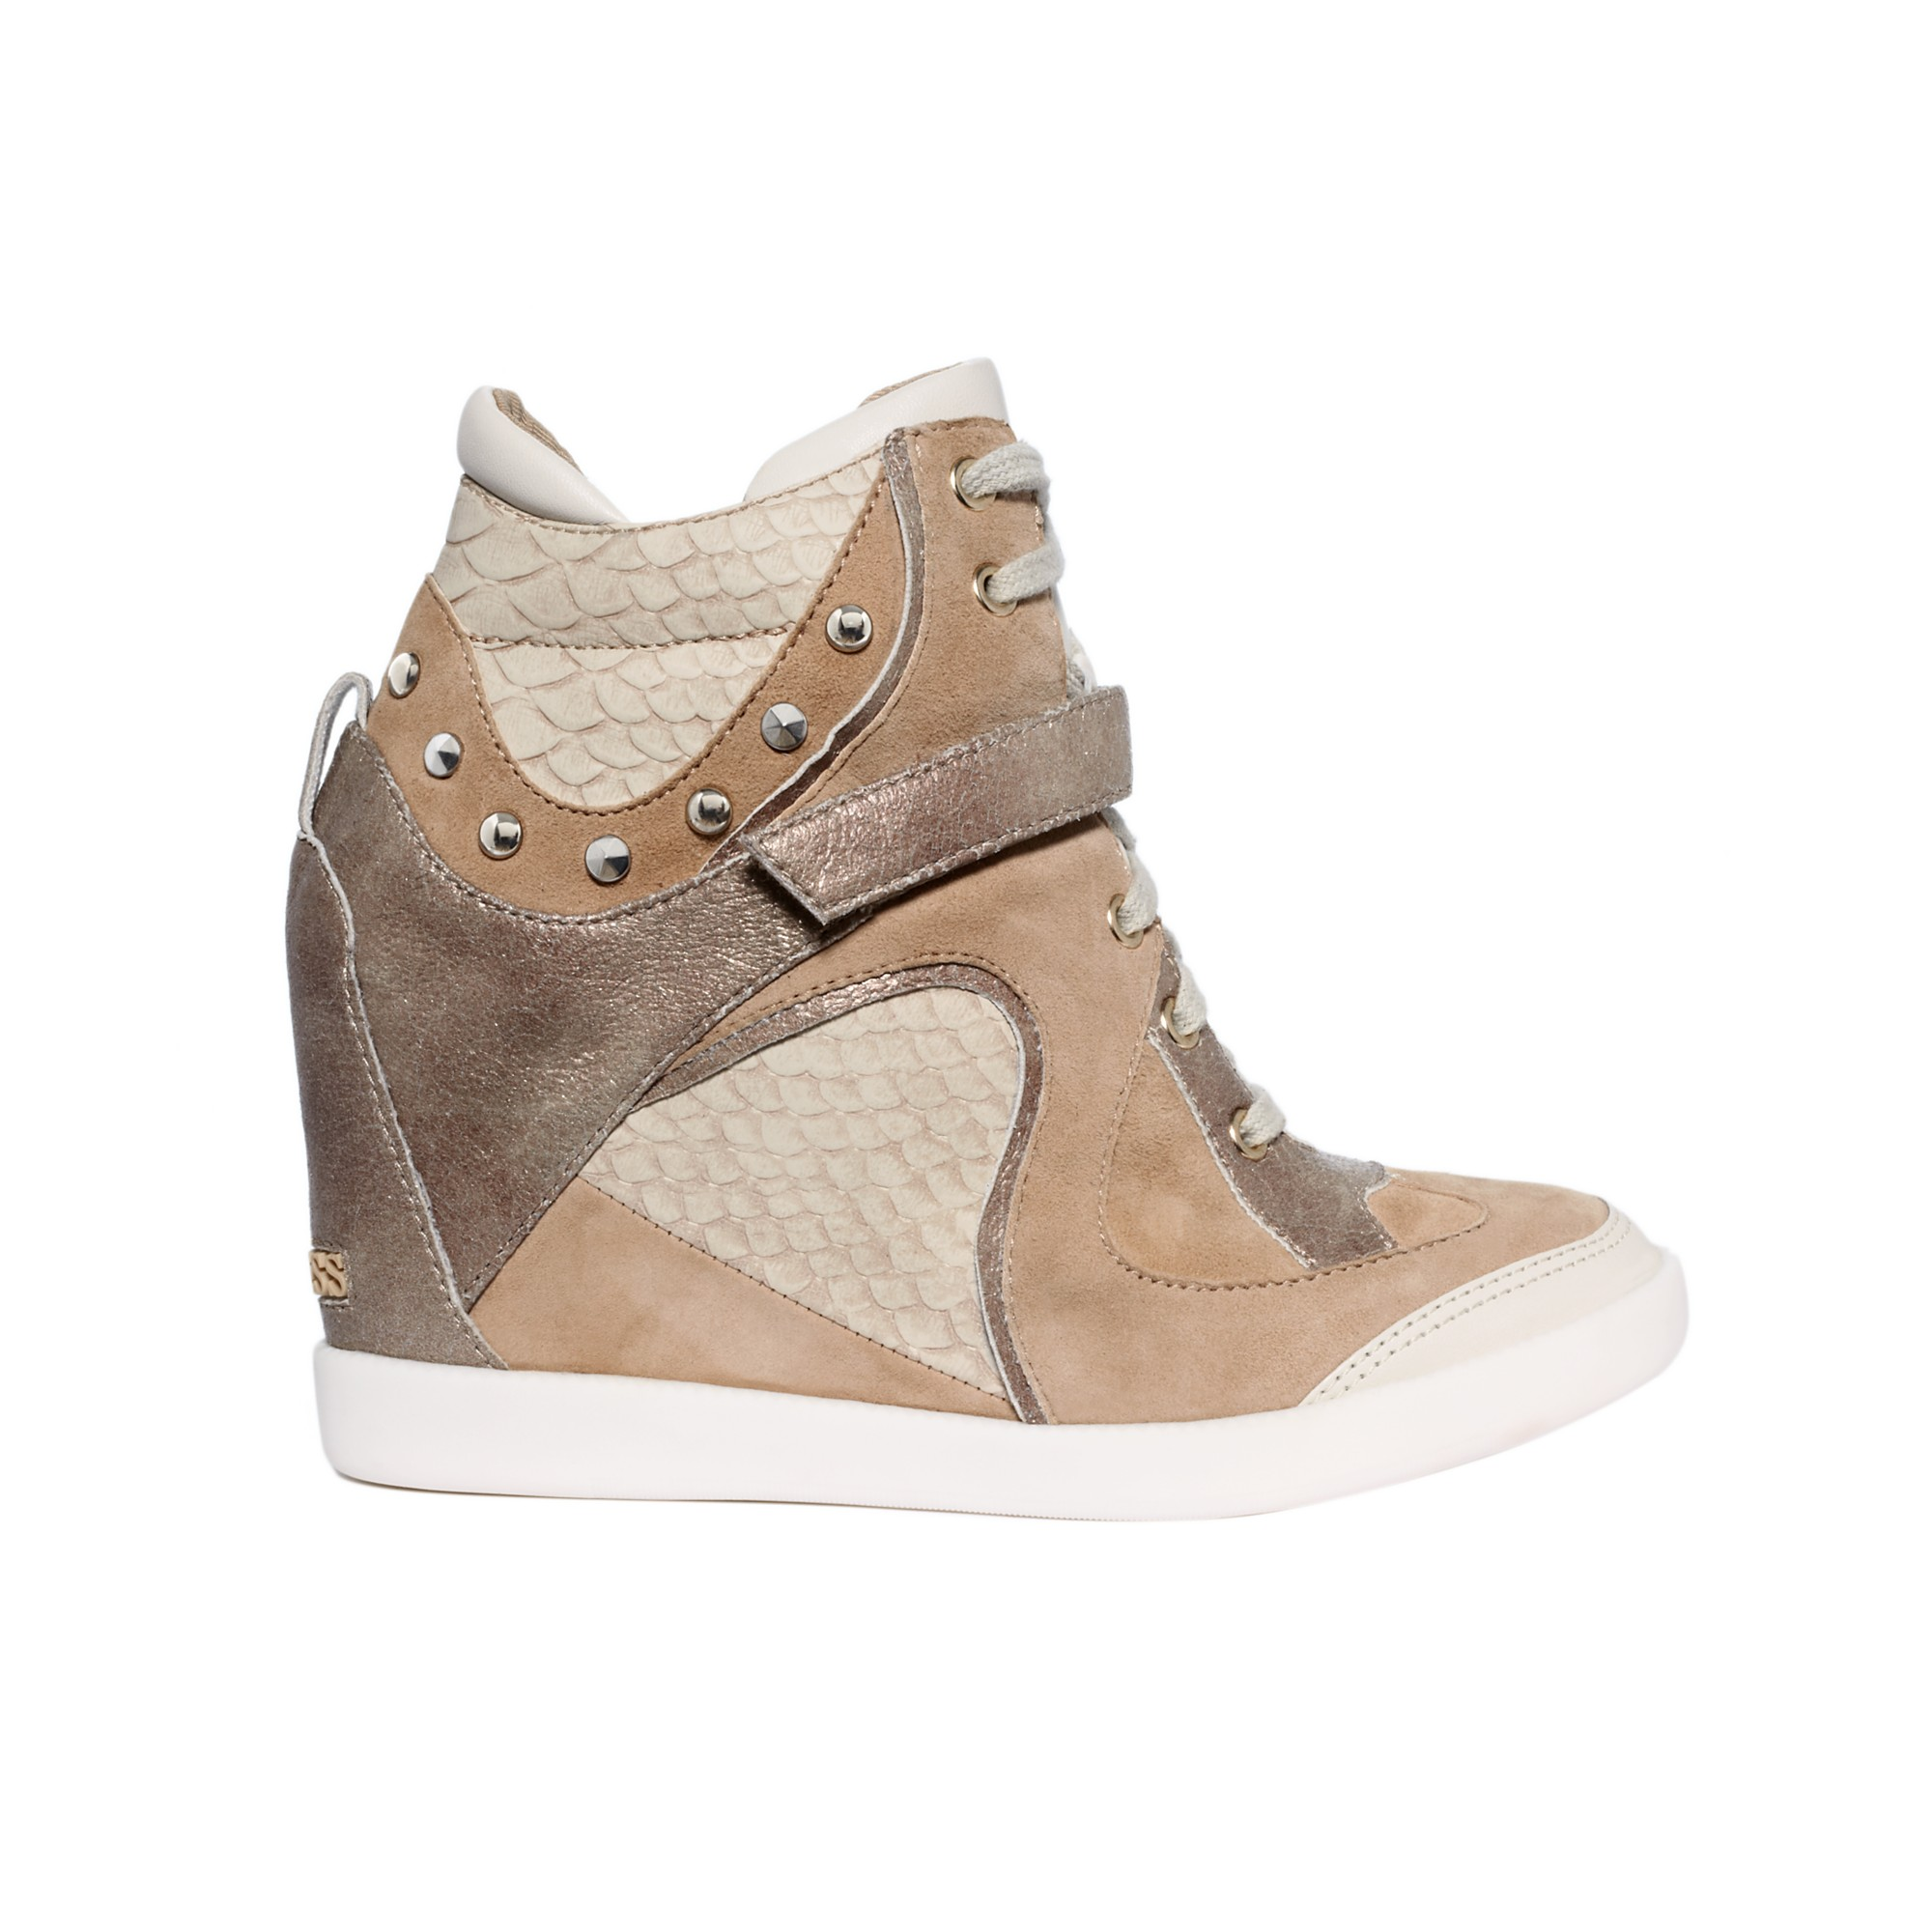 lyst guess huxley wedge sneakers in brown